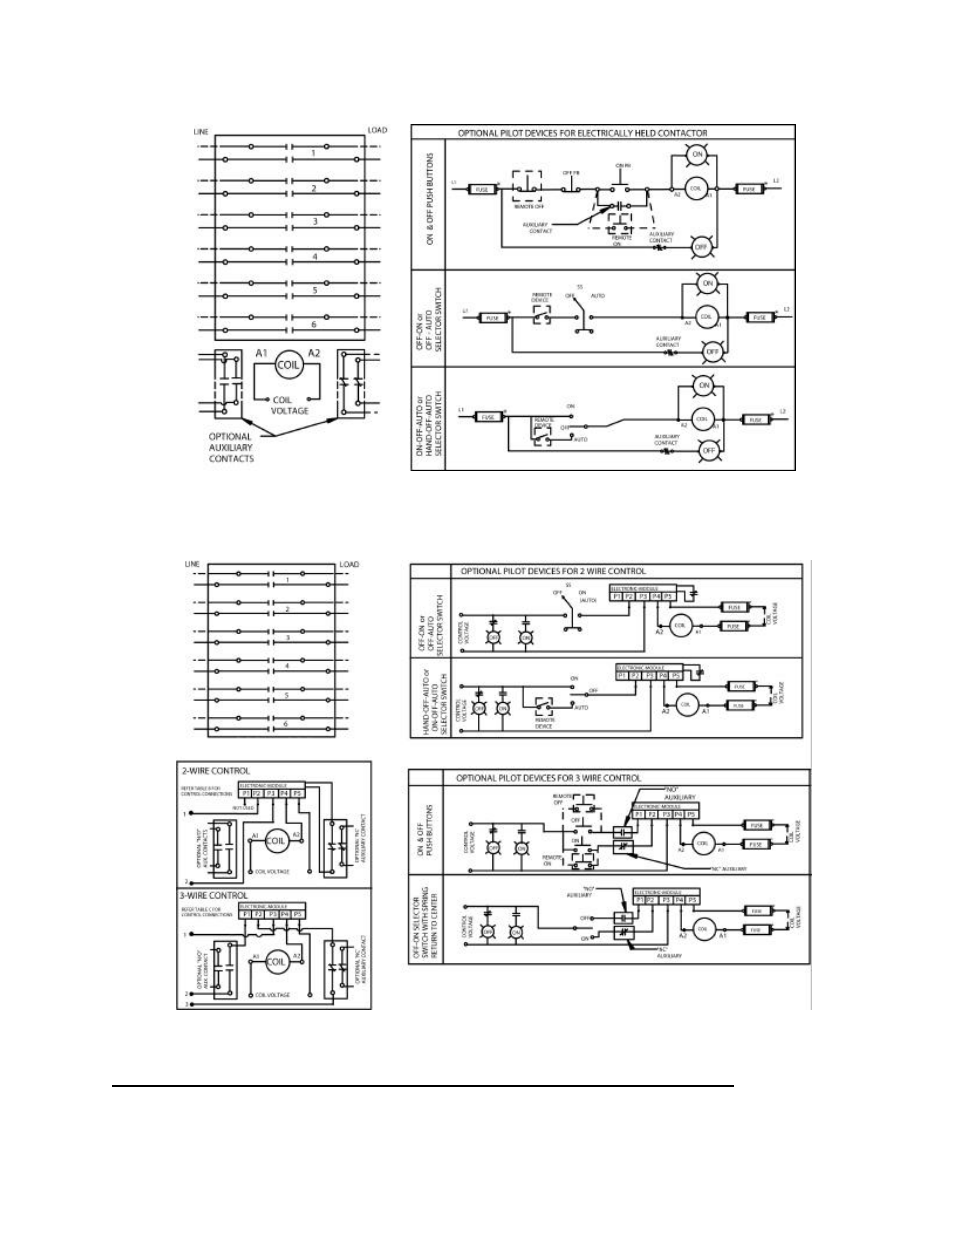 ge industrial solutions cr460 lighting contactor series page4 ge industrial solutions cr460 lighting contactor series user ge lighting contactor cr460 wiring diagram at pacquiaovsvargaslive.co